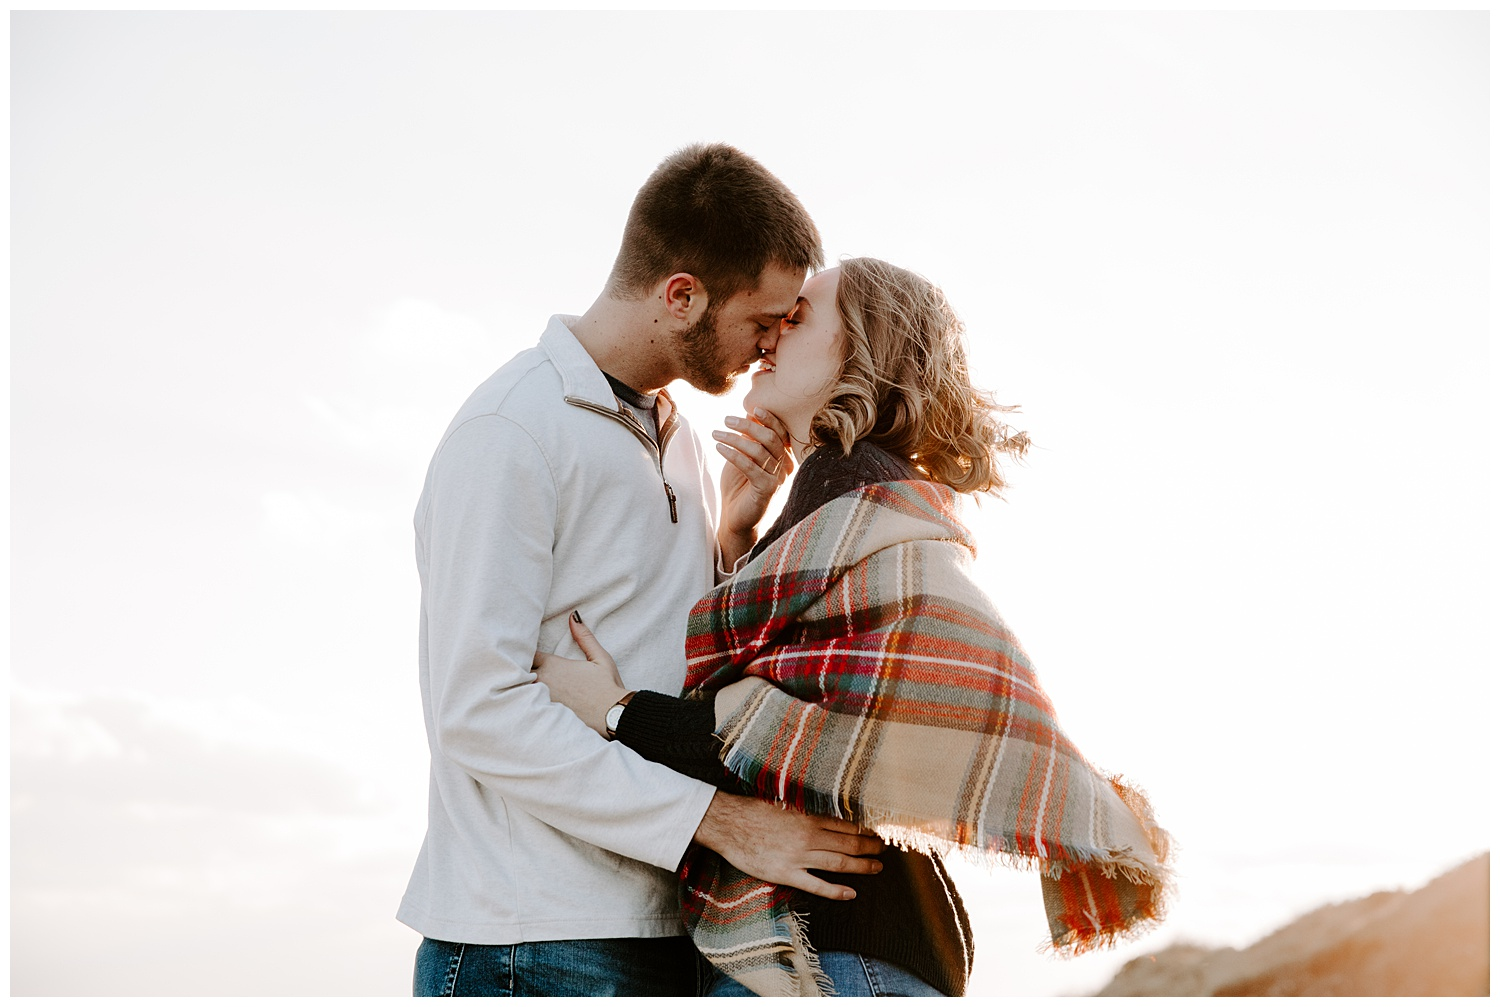 jay_kalyn_beavertail_beach_winter_engagement_session_jamestown_rhode_island04.jpg